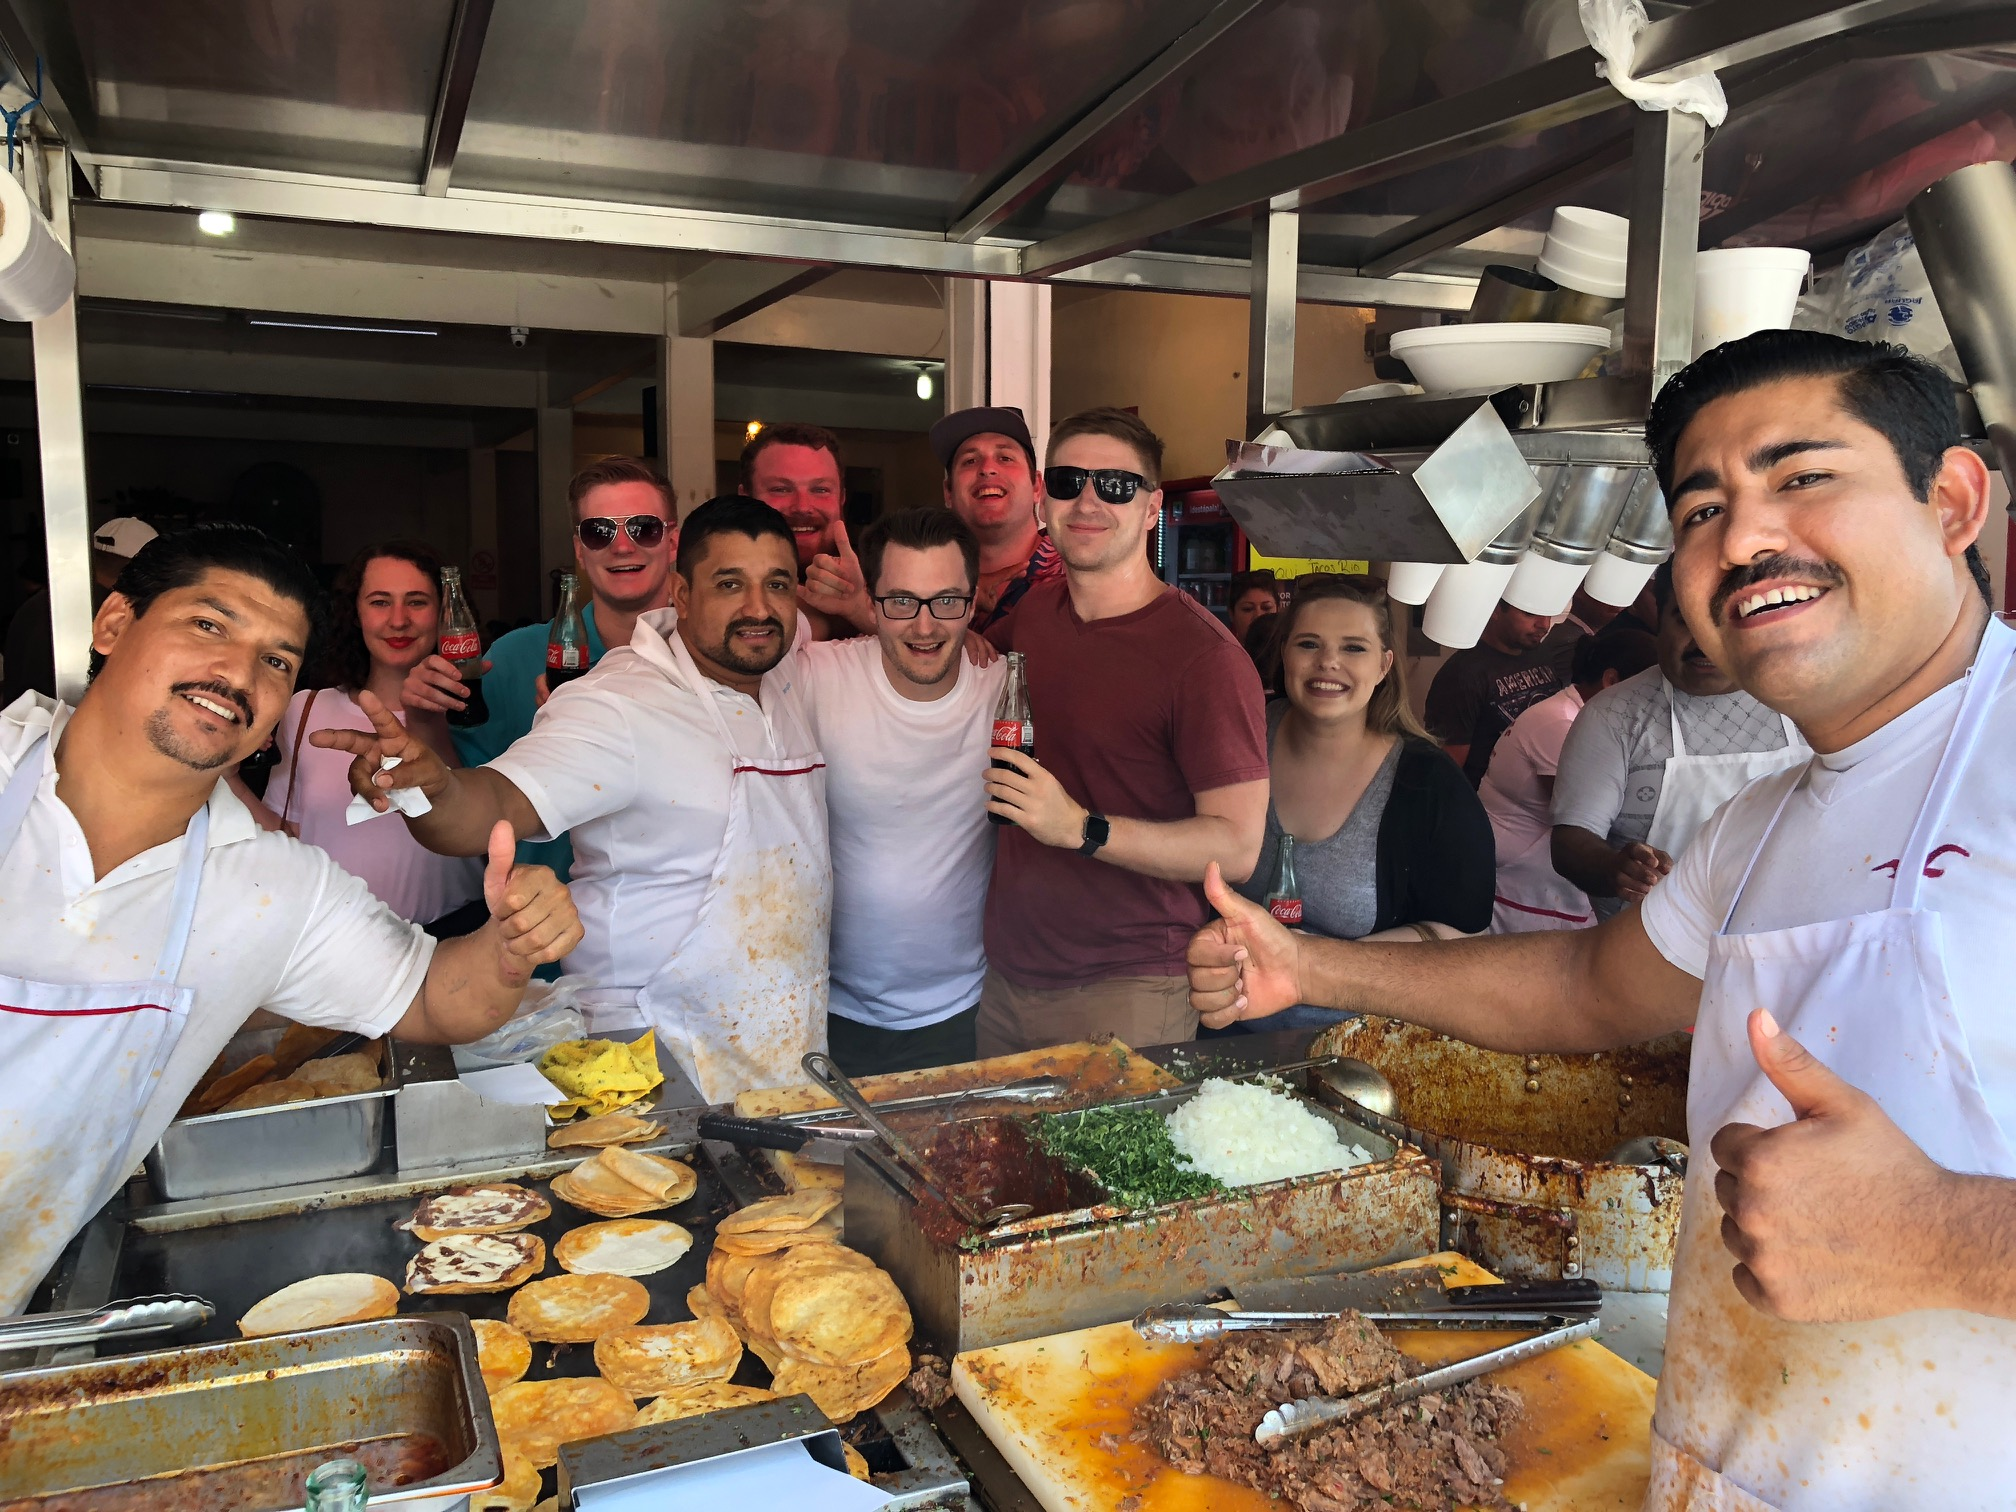 """James and his group taking a photo with some of Tijuana's most famous """"taqueros."""" James proclaimed these beef tacos de birria """"the best tacos I've ever eaten!"""" (we hear that a lot)"""